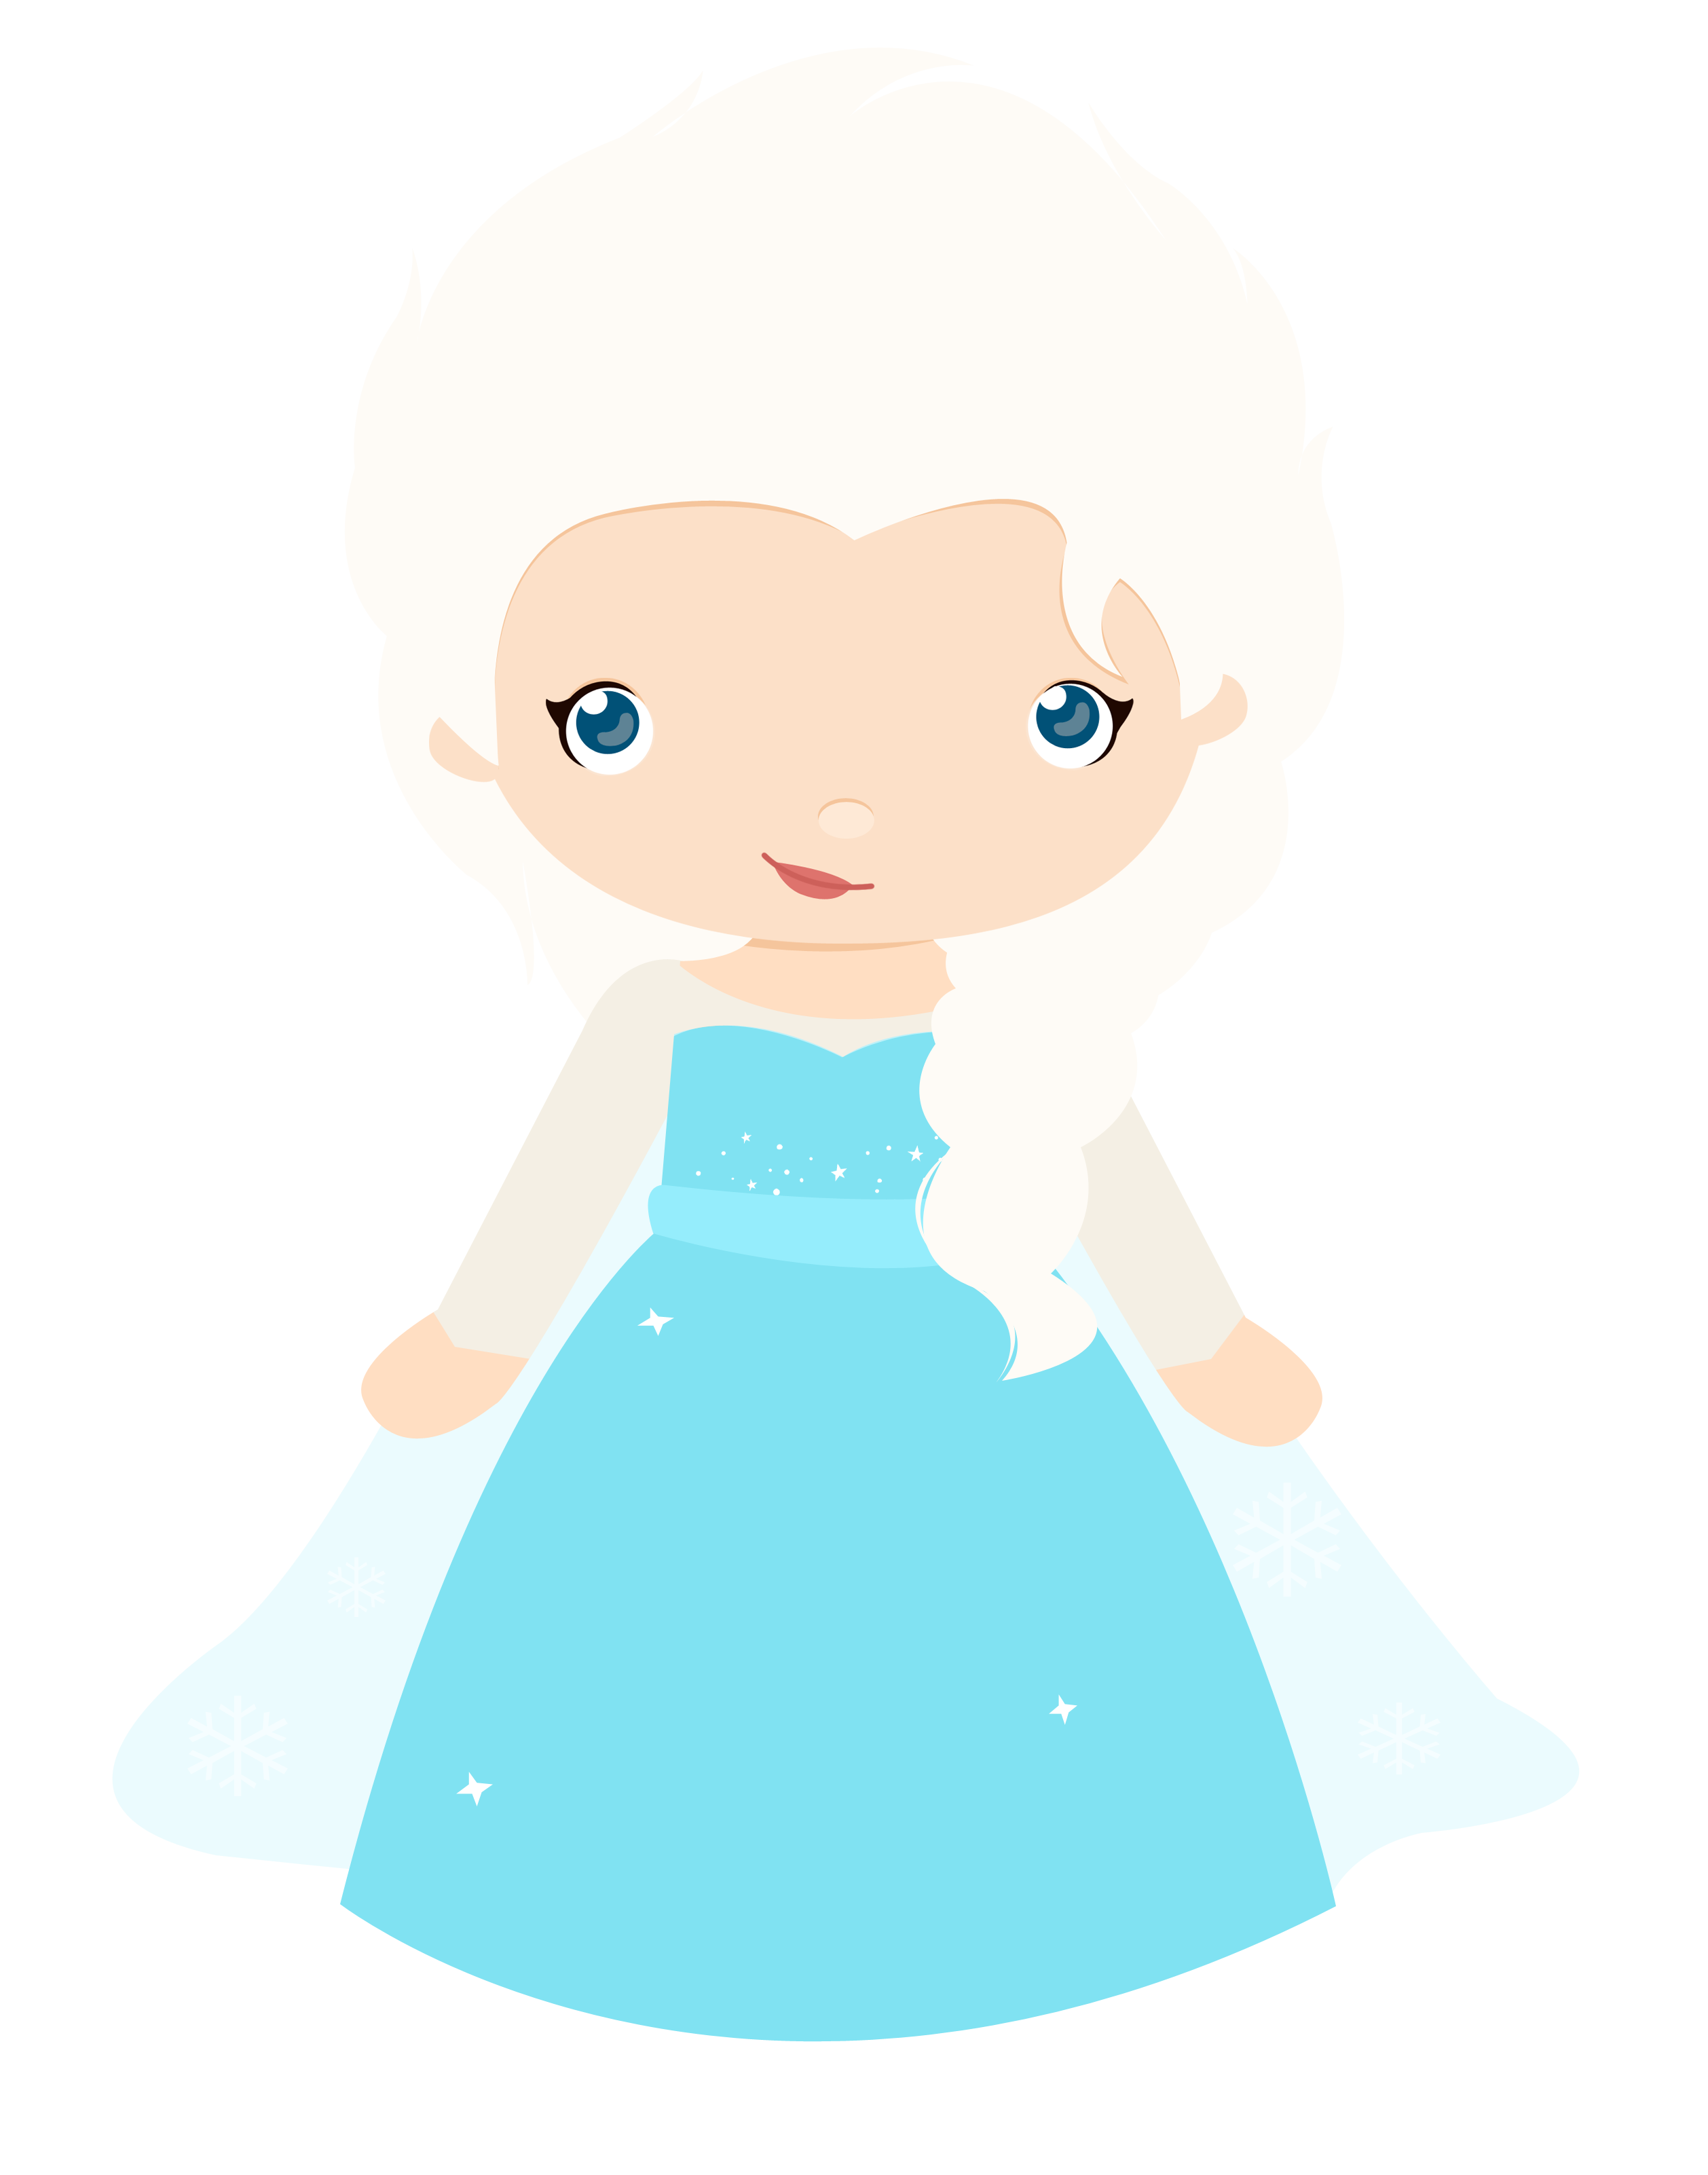 frozen clipart snow